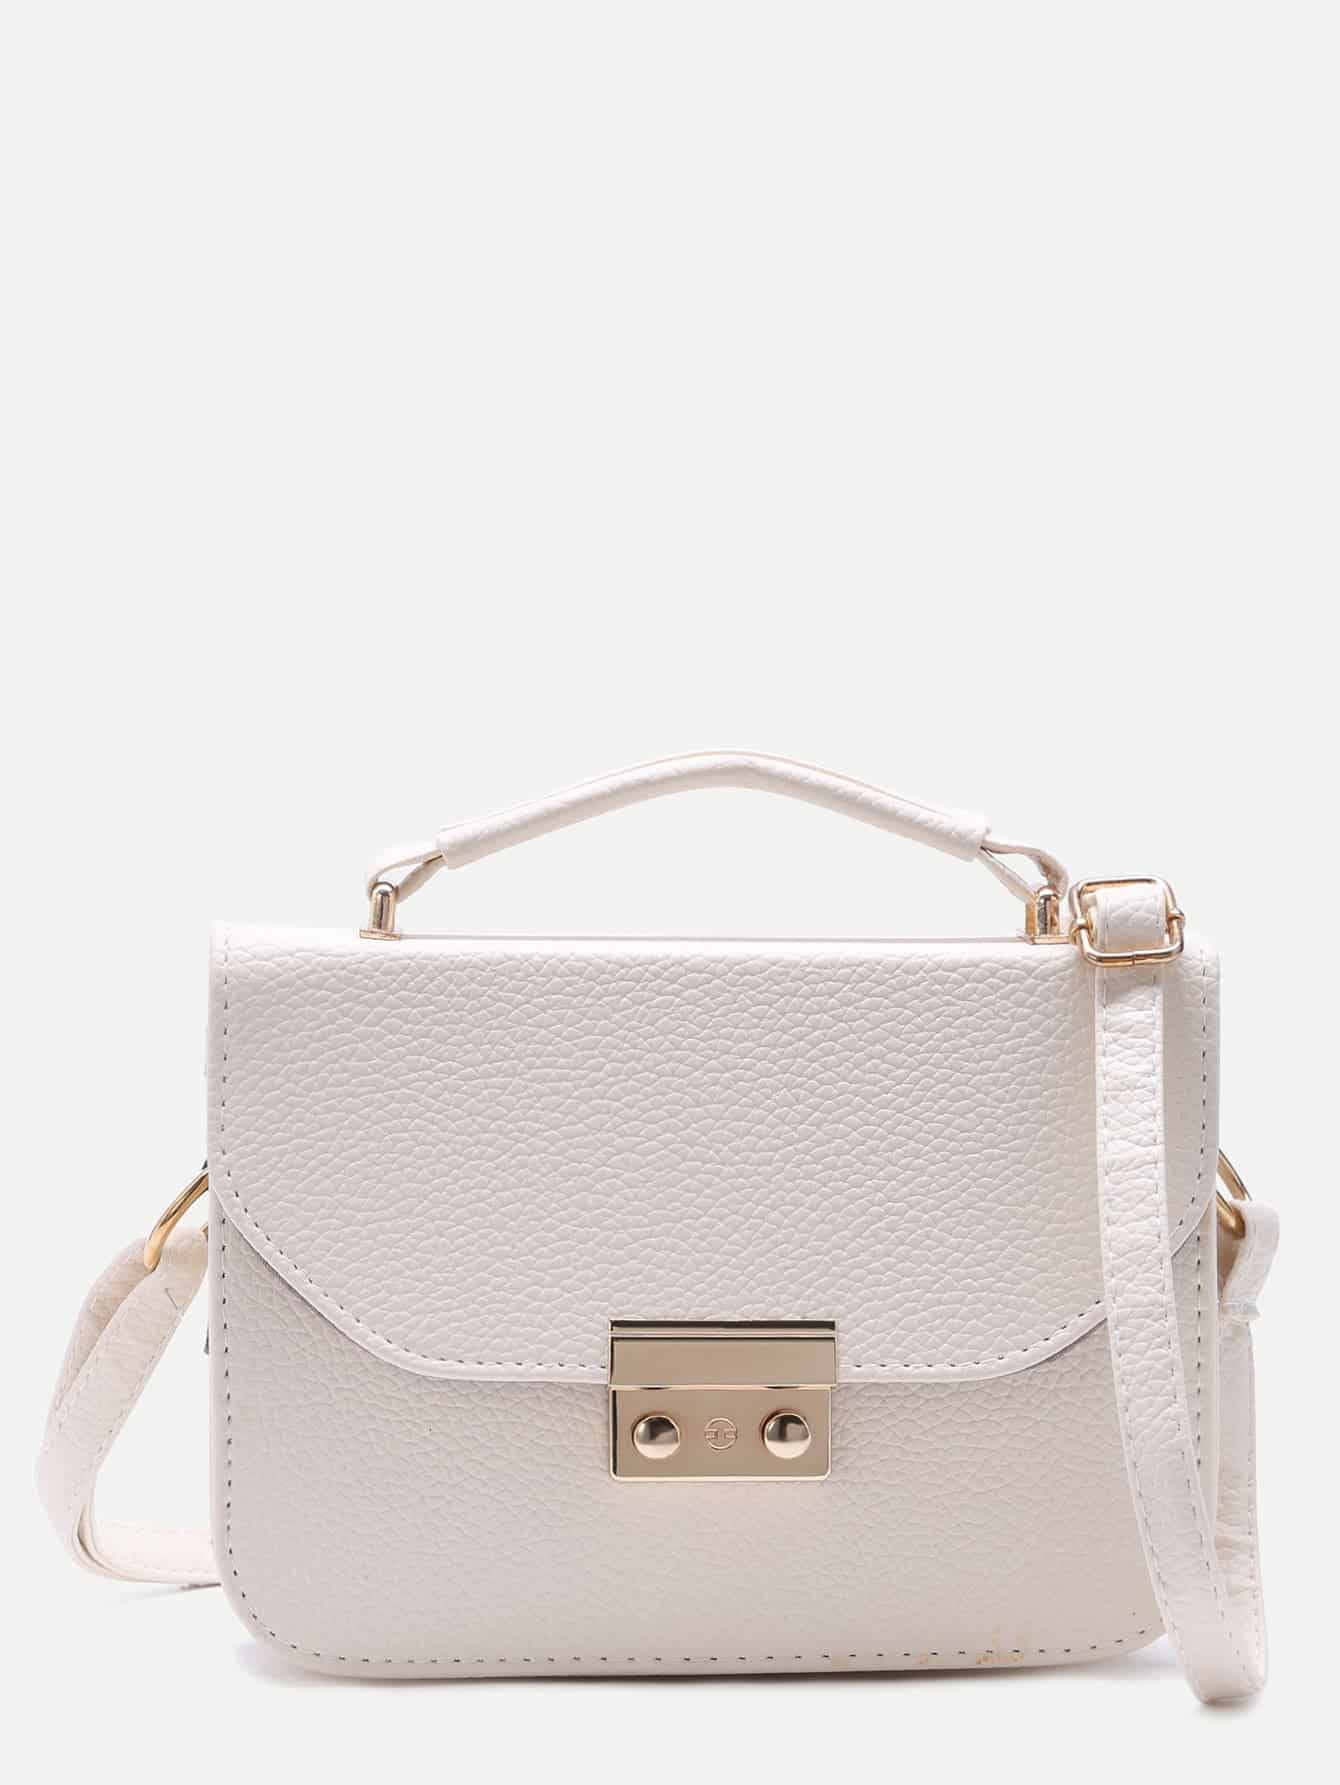 White Pebbled PU Box Handbag With Strap Image